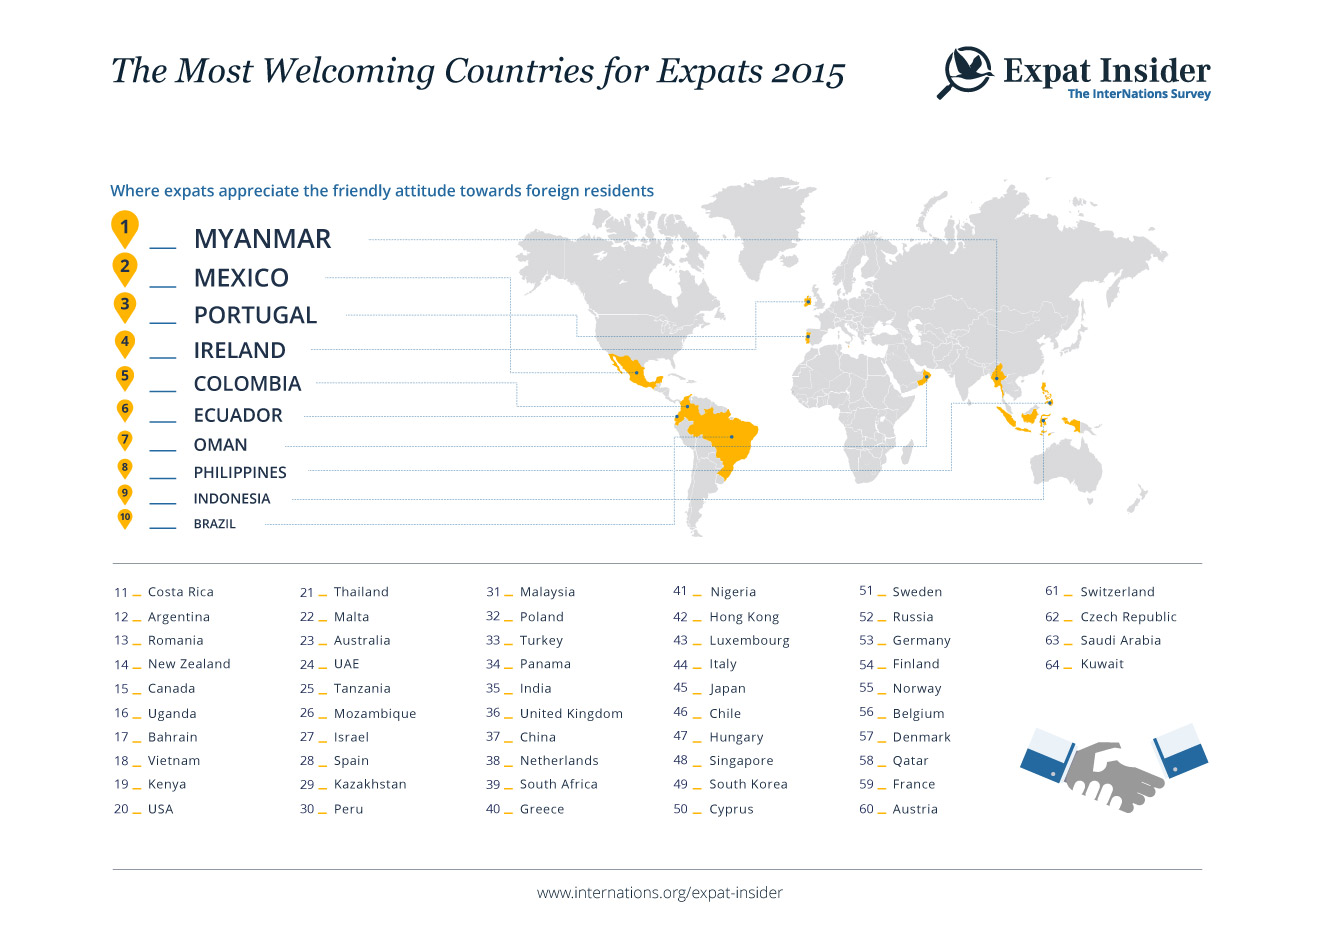 Most Welcoming Countries for Expats 2015 - infographic